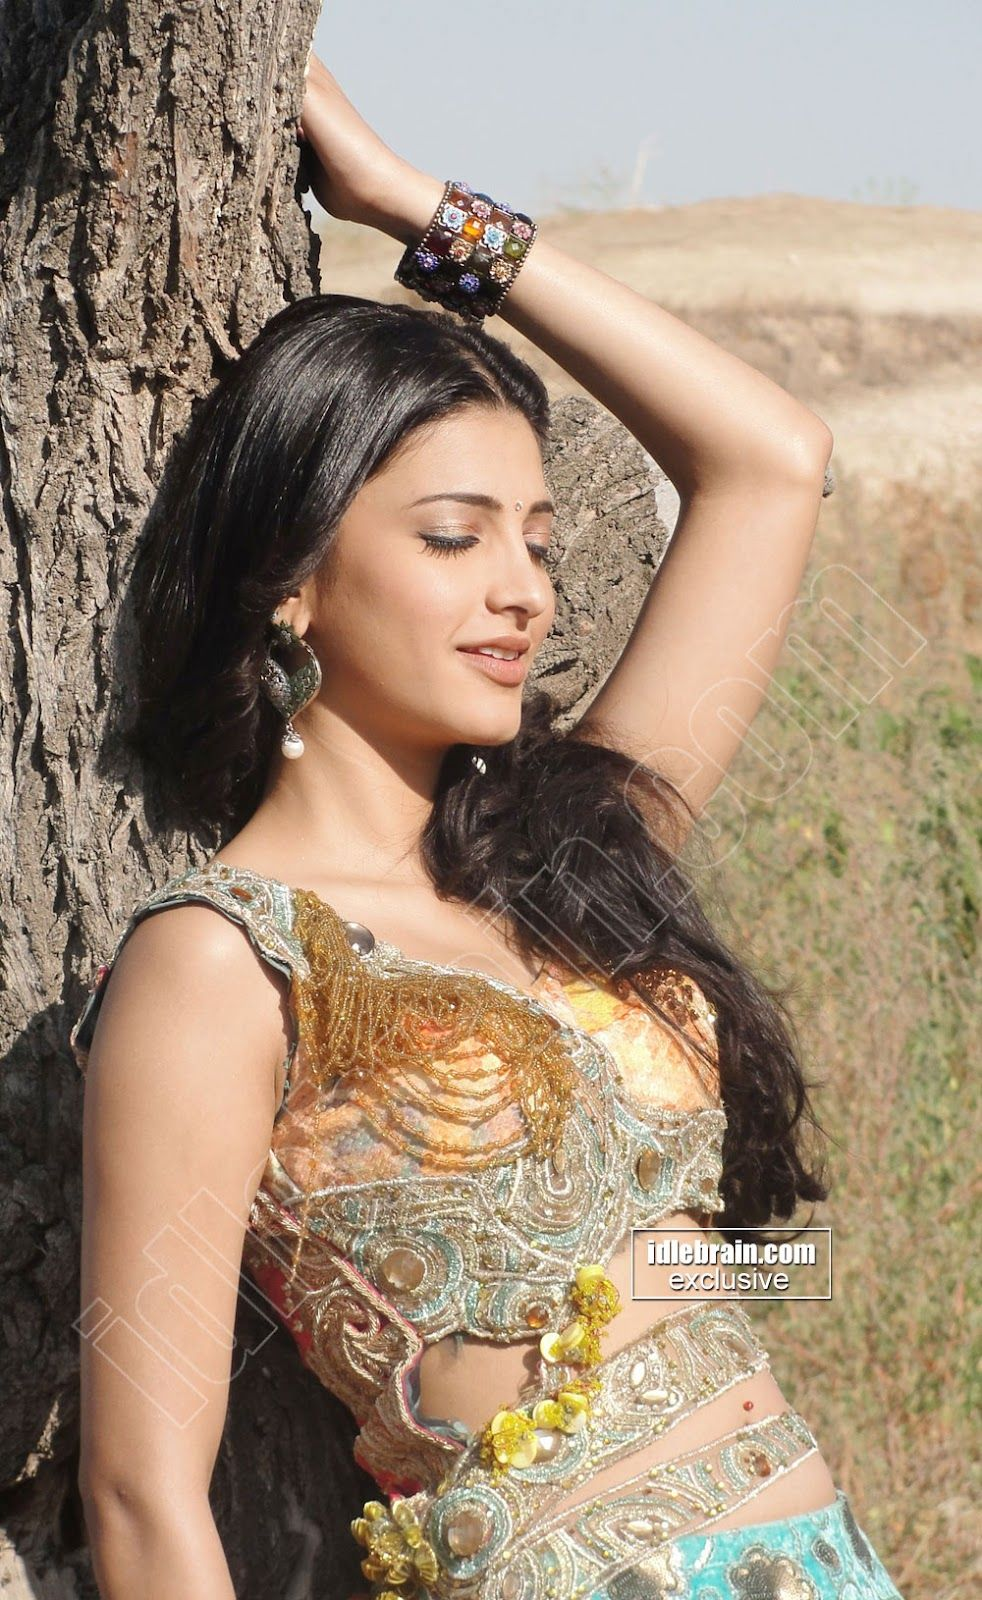 Hot Armpit Actress Armpit Indian Armpit Actress Armpit Photos